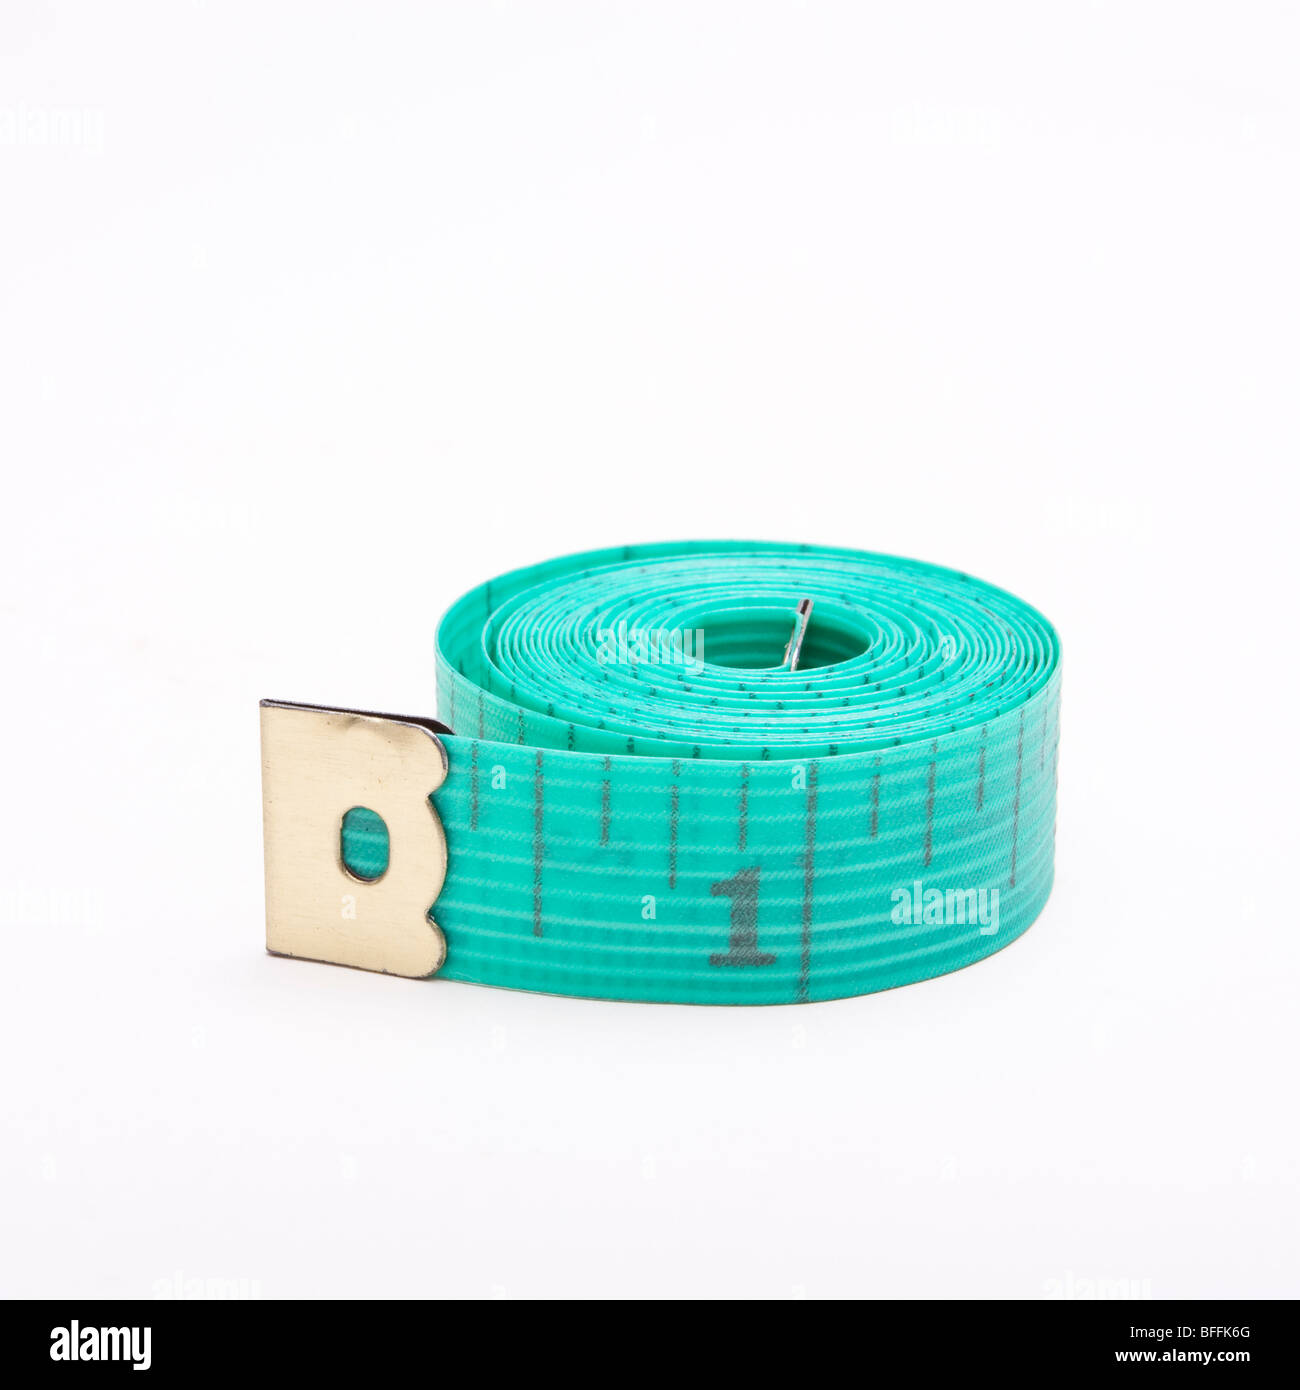 Dressmakers or Tailors rolled up tape measure isolated against white background. Stock Photo